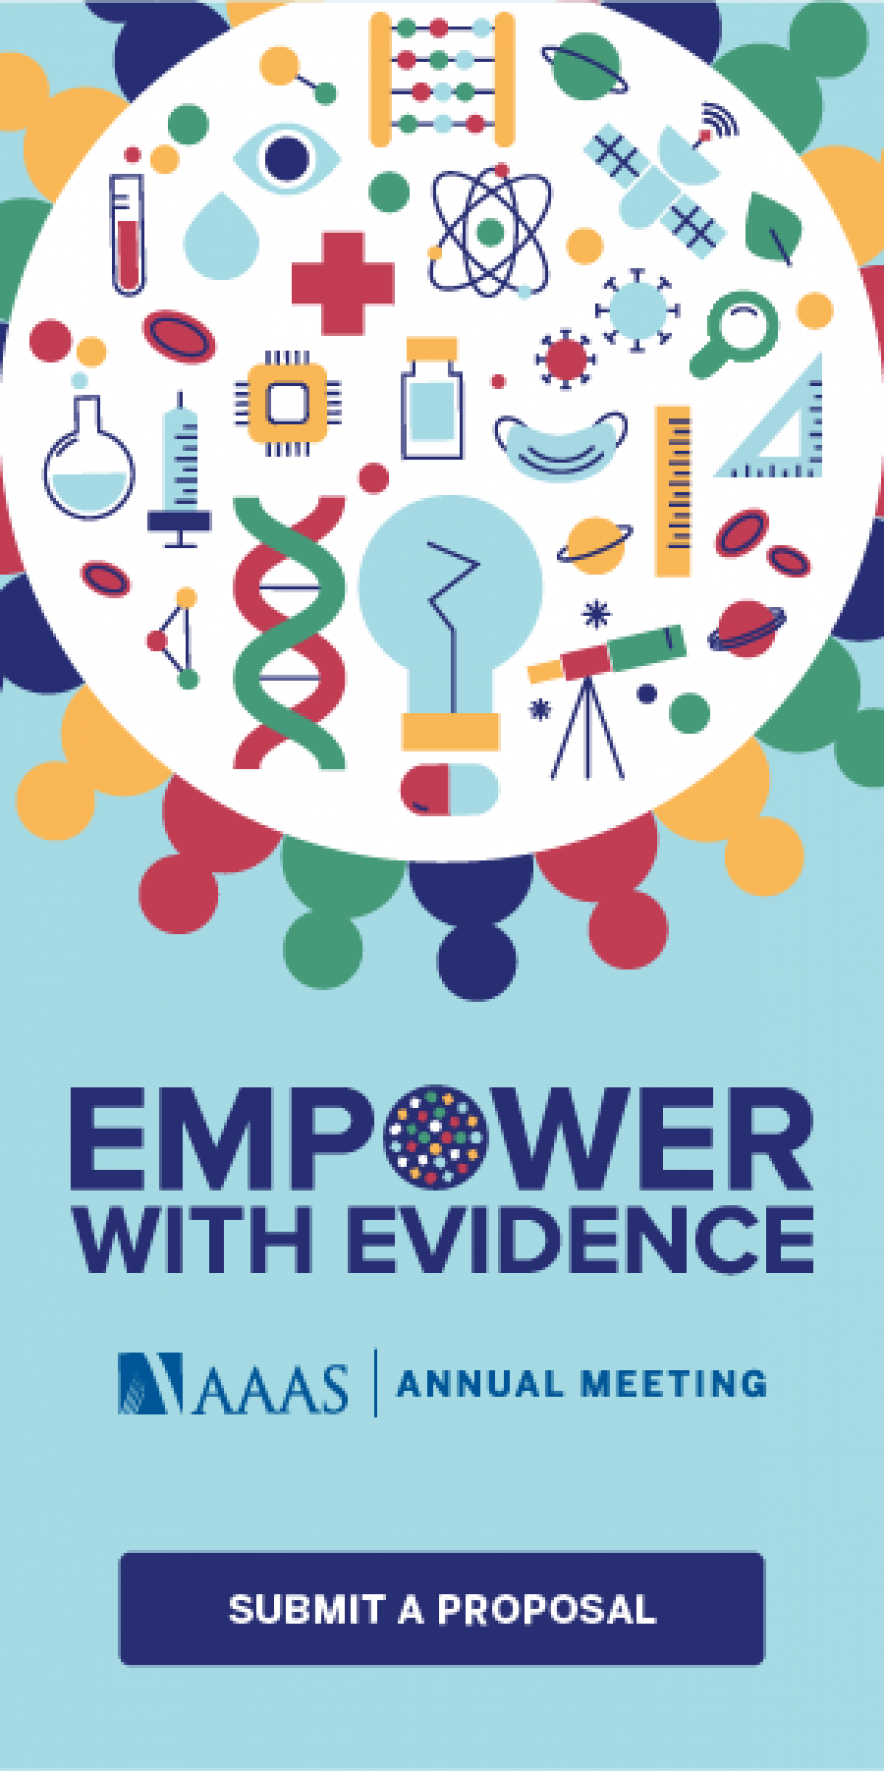 Submit a proposal for the 2022 AAAS Annual Meeting. Theme- Empower With Evidence.